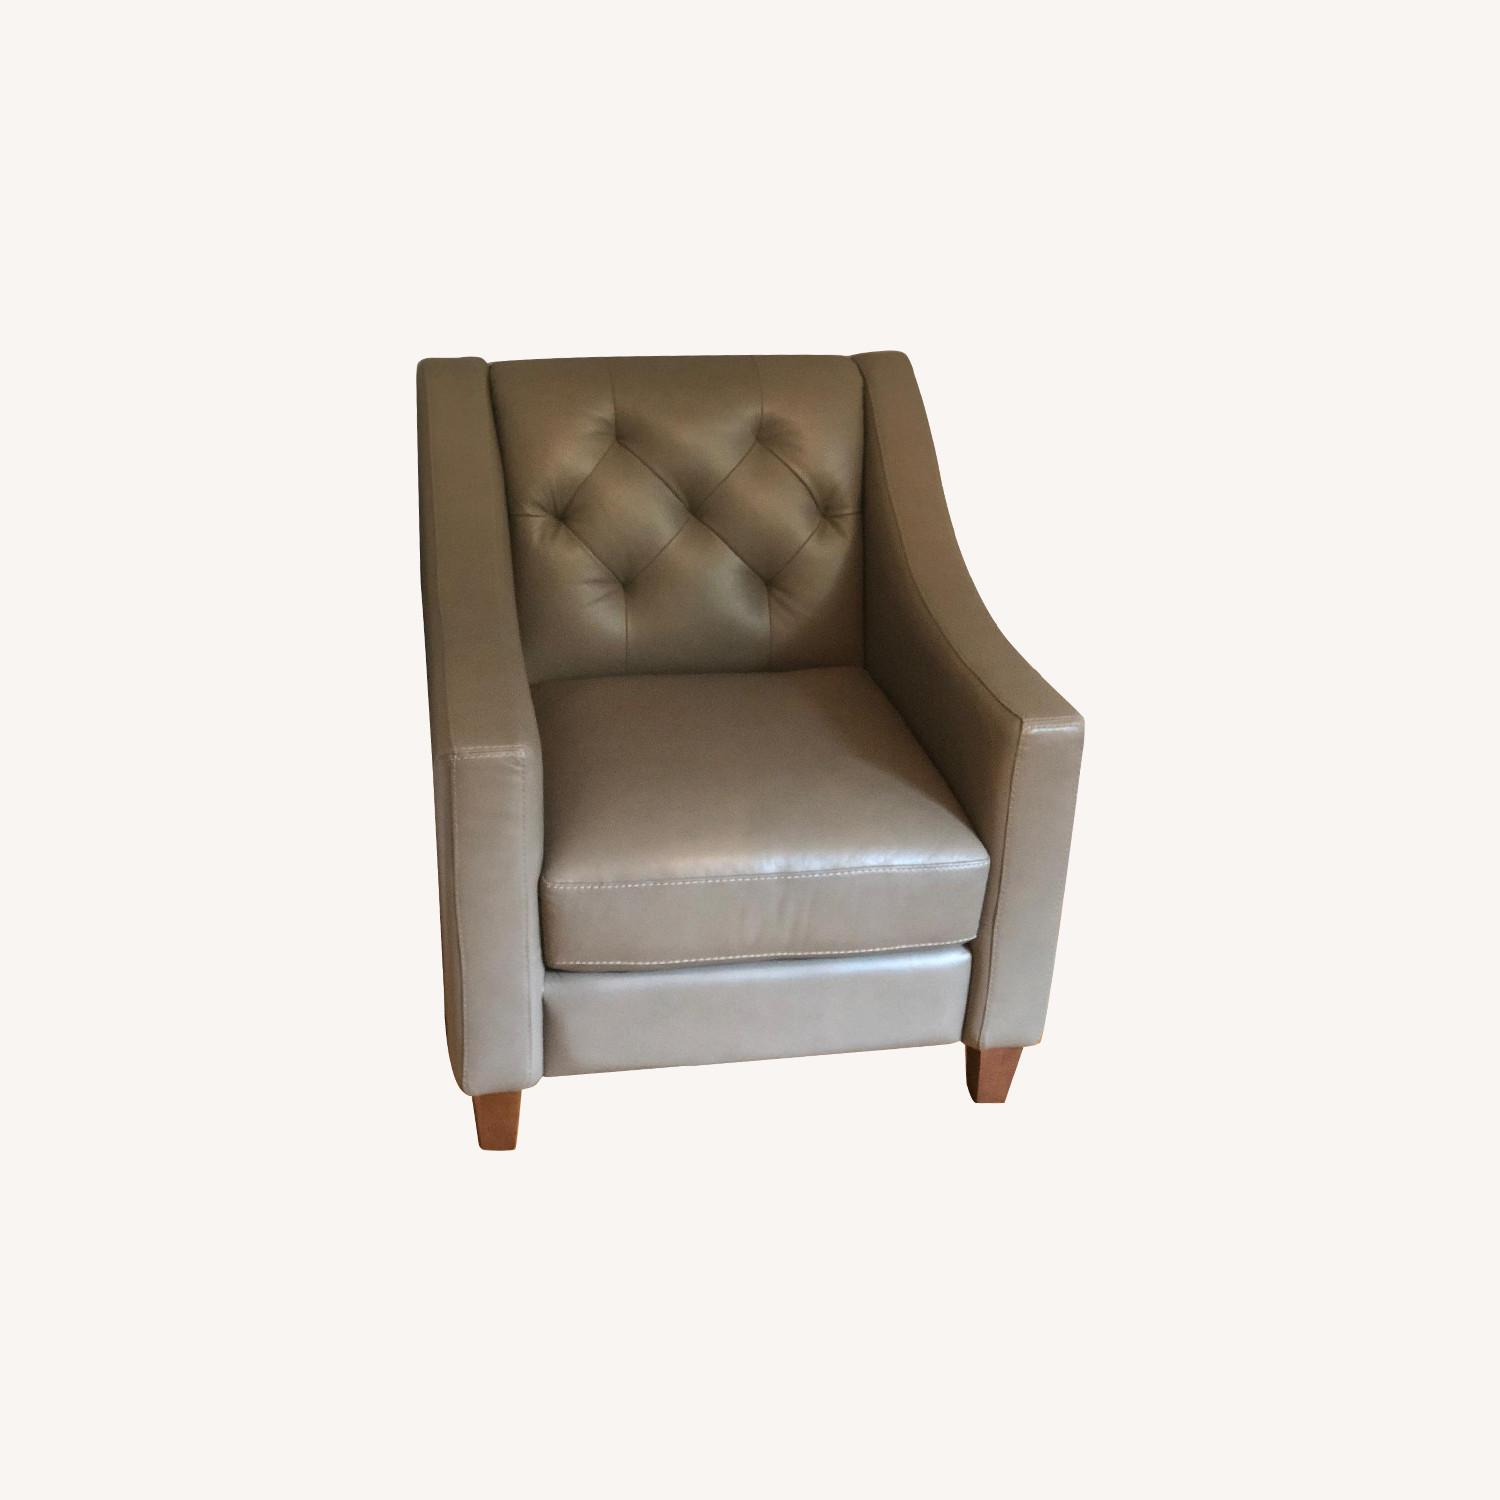 Macy's Taupe Tufted Leather Armchair - image-0